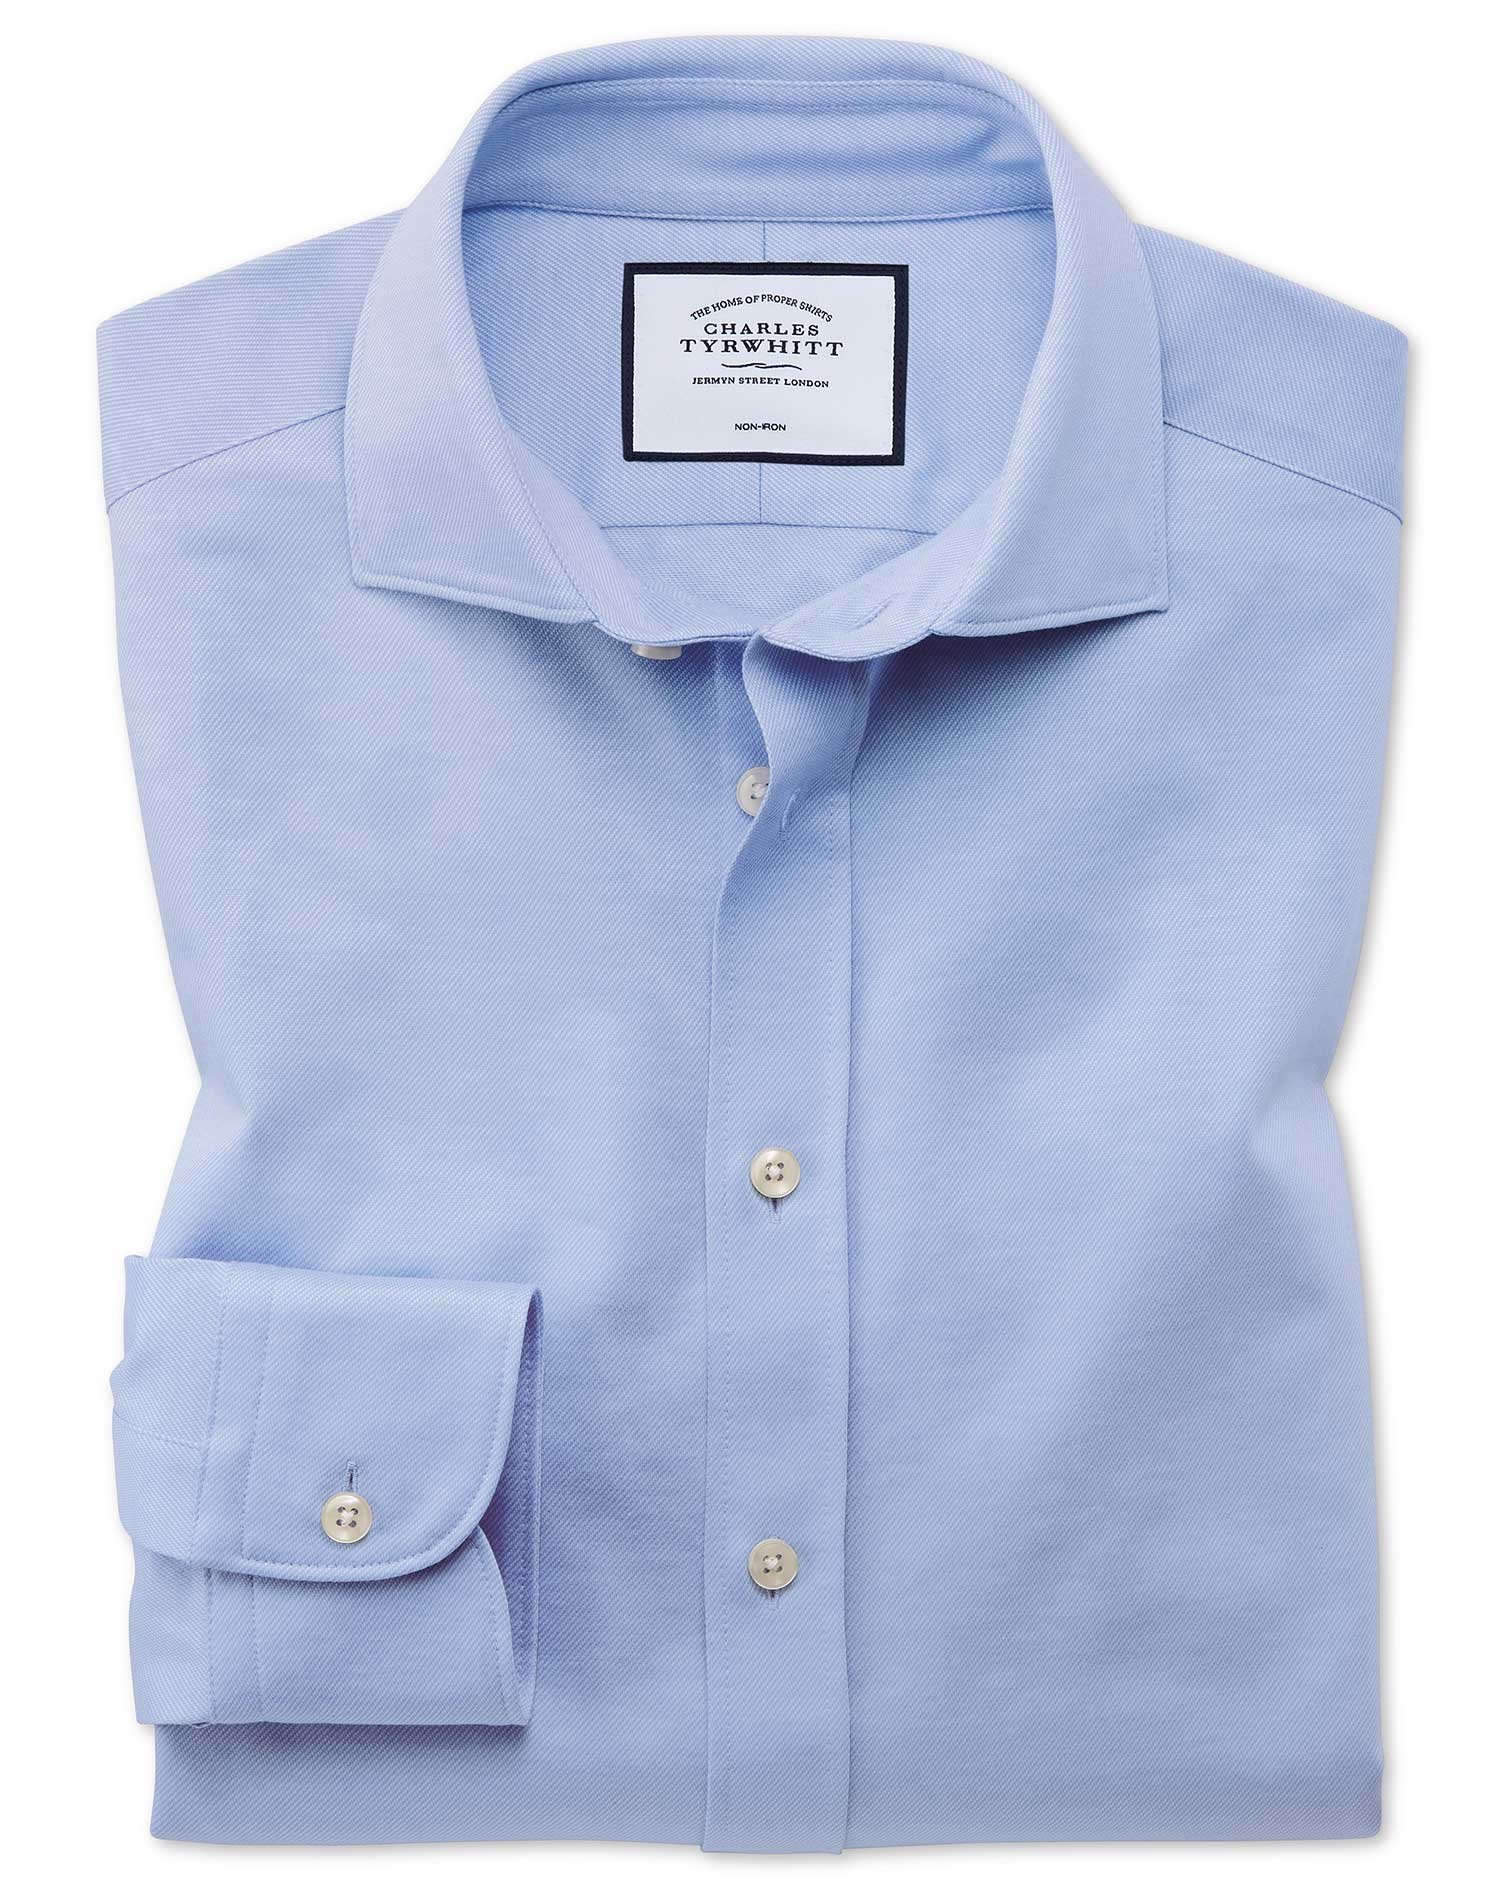 Slim Fit Business Casual Travel Blue Cotton Formal Shirt Single Cuff Size 16.5/35 by Charles Tyrwhit